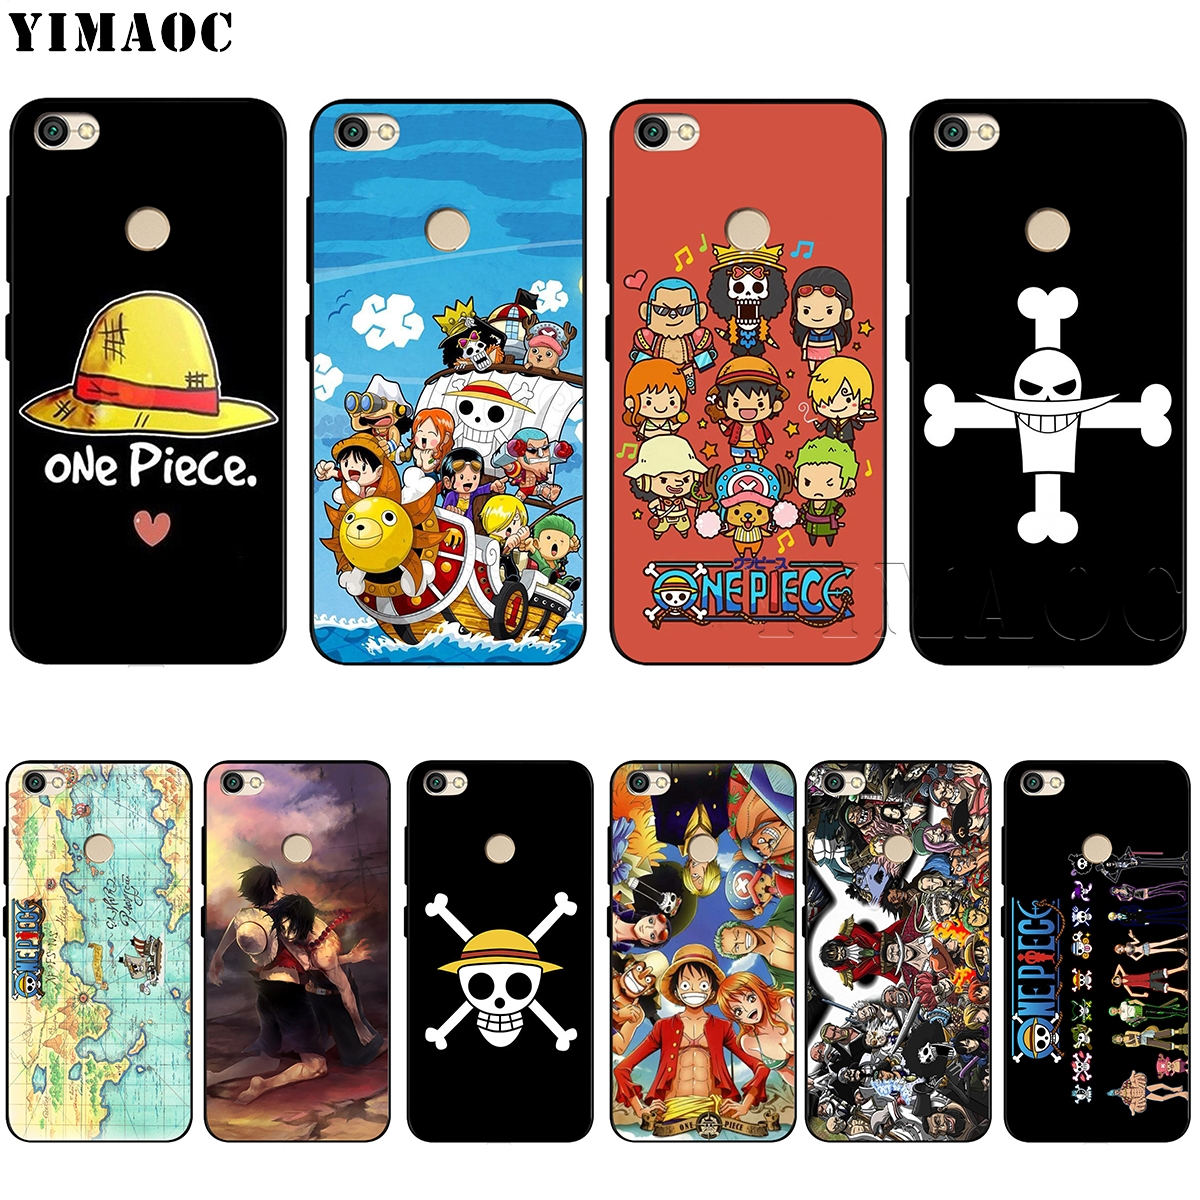 Yimaoc One Piece Silicone Case For Xiaomi Redmi Note 4 4x 4a 5 5a 6 8 Pro Prime Plus Buy At The Price Of 1 97 In Aliexpress Com Imall Com